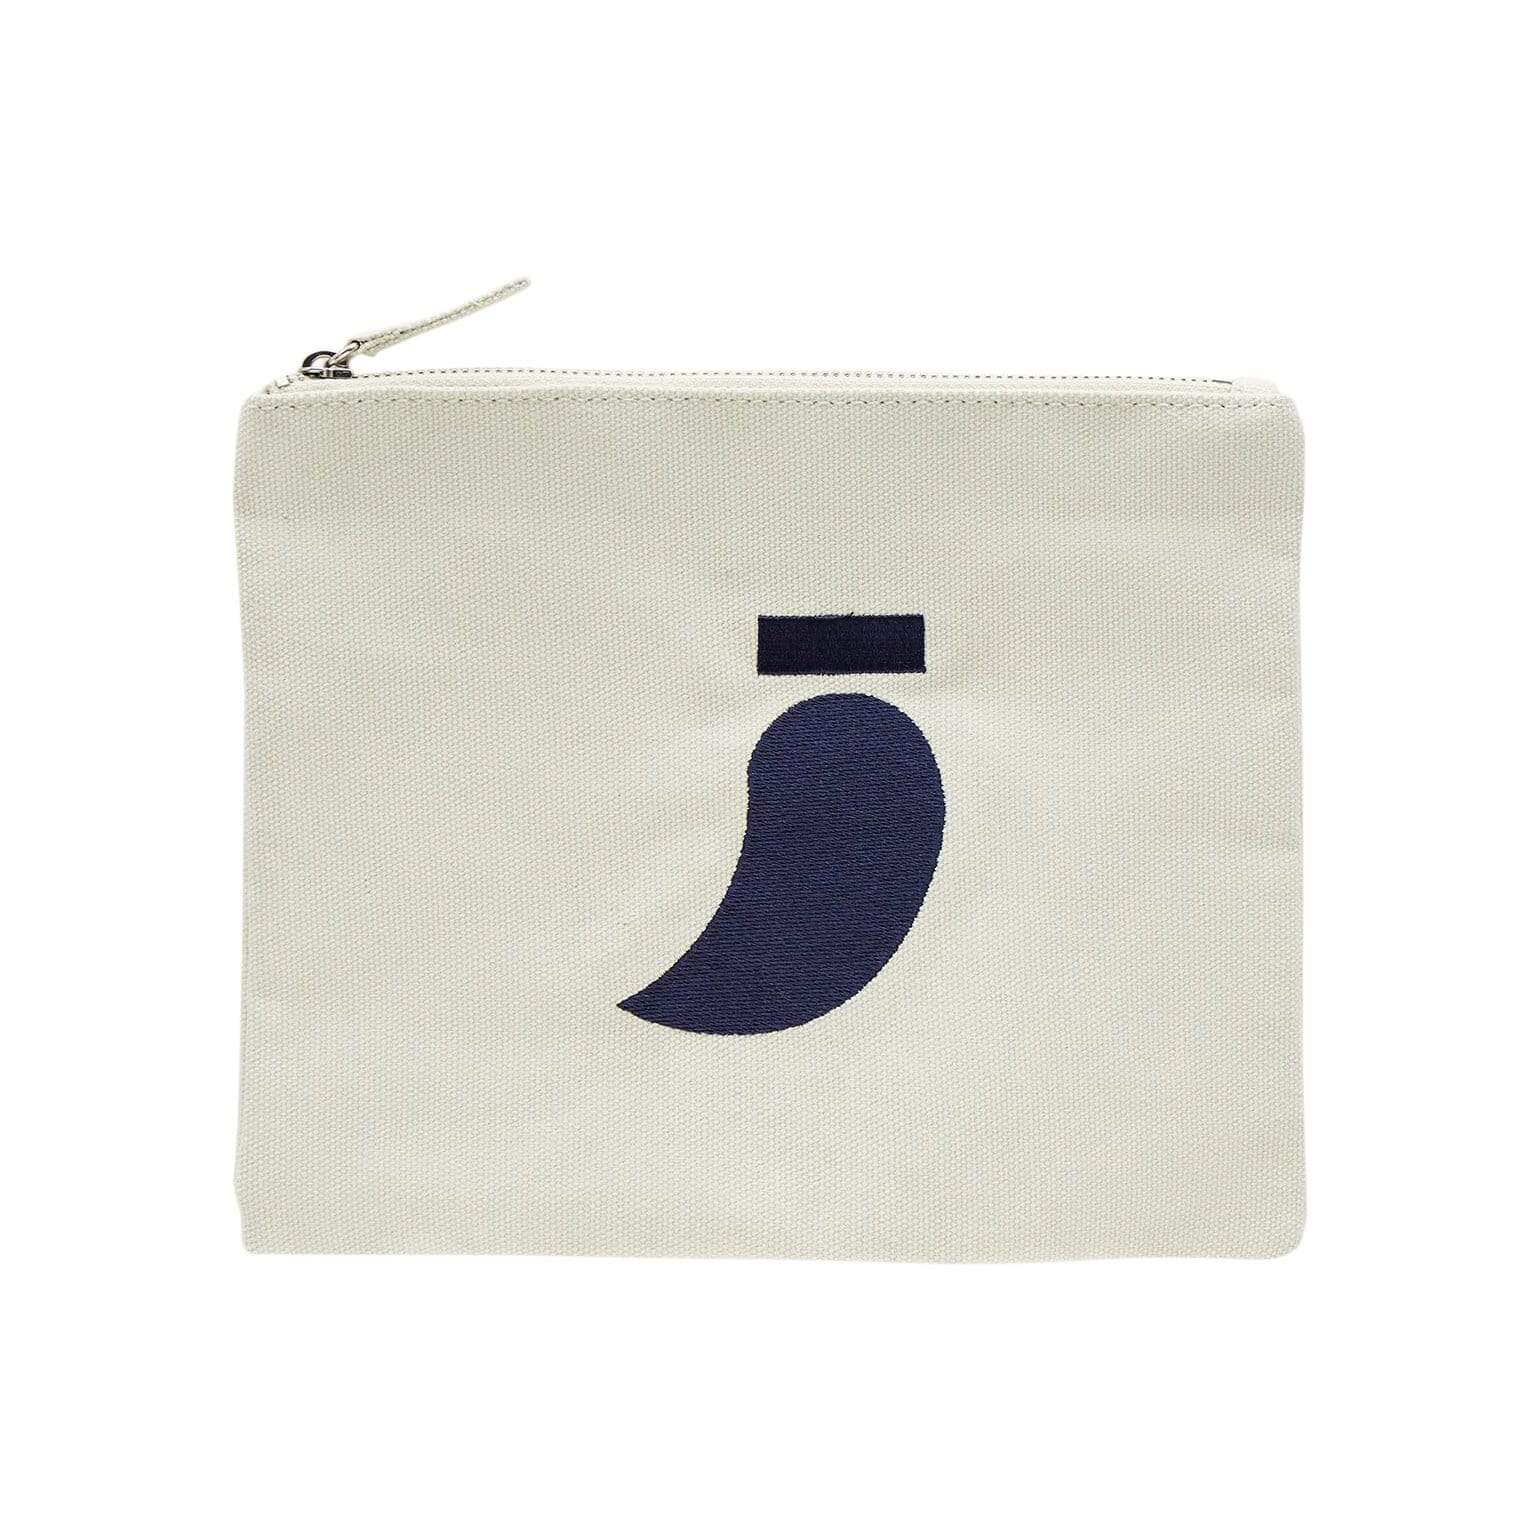 The Painter's Wife Walk Helen F. Navy Logo Treat Bag